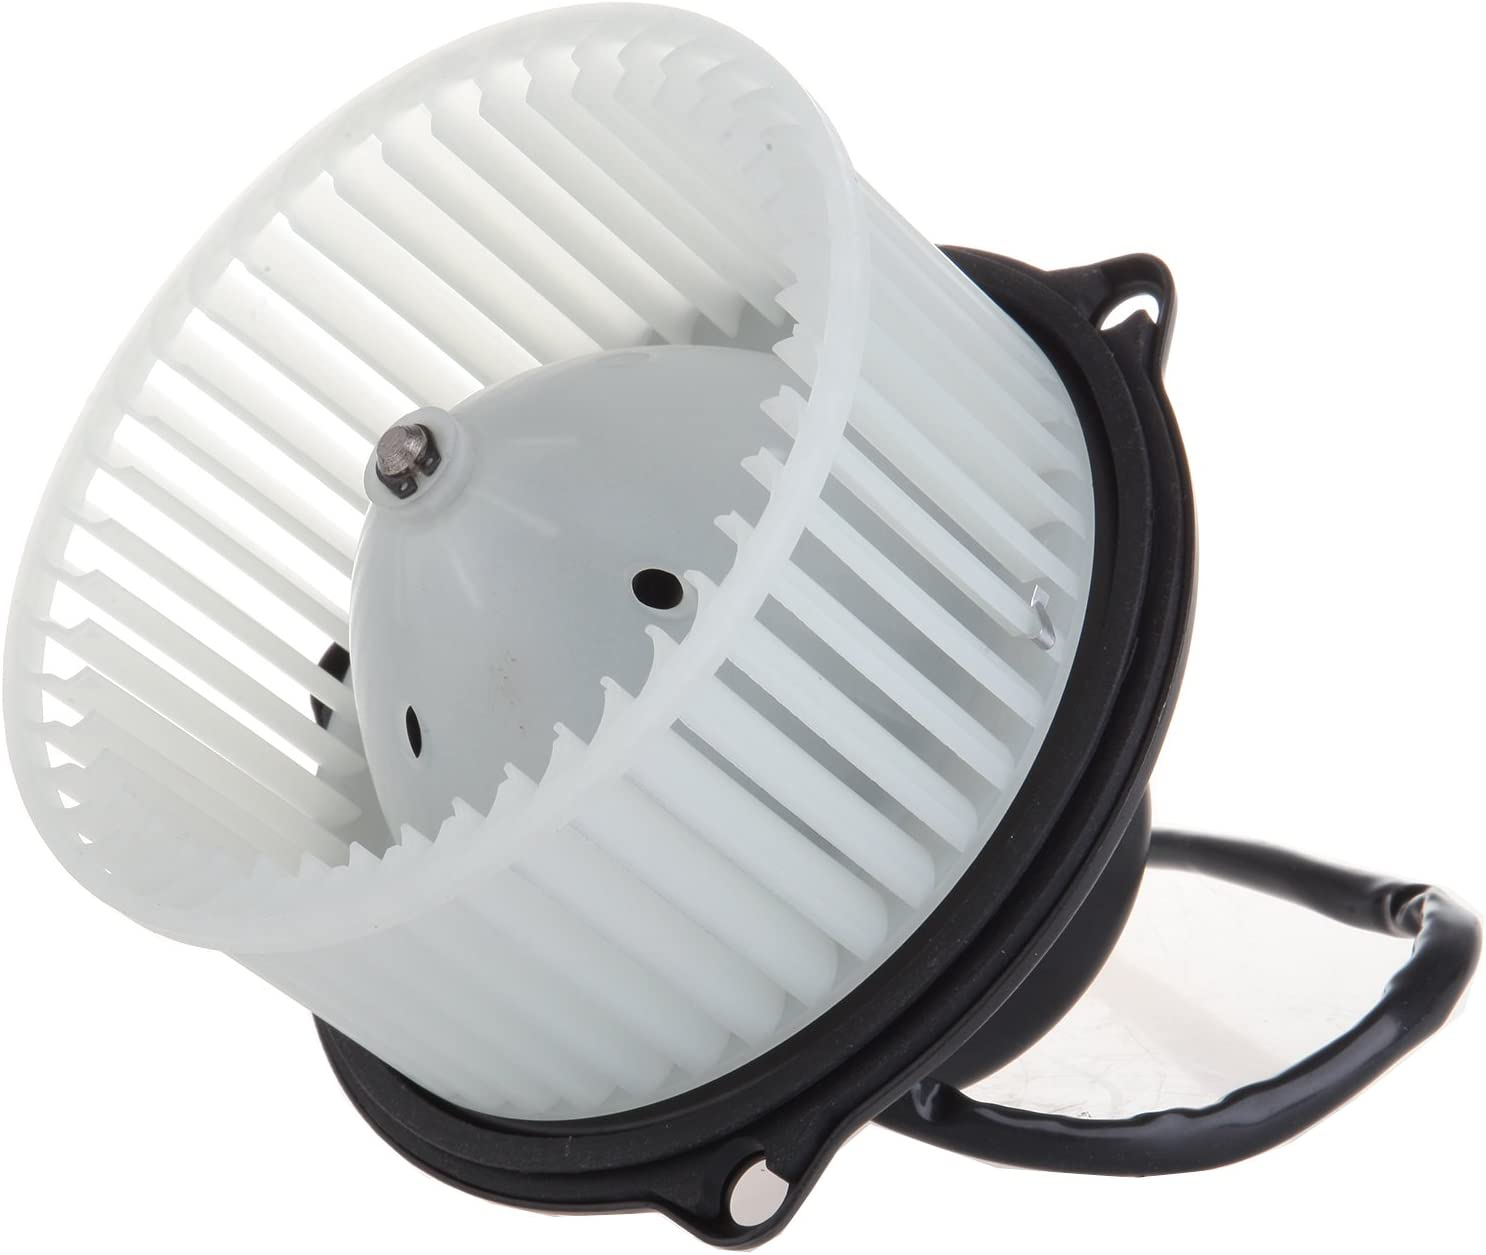 INEEDUP 615-00486 ABS Blower Motor Air Conditioning And Heating Fit for 1994-2001 Dodge Ram 1500//1994-2002 Dodge Ram 2500//1994-2002 Dodge Ram 3500//1995-2002 Dodge Ram 4000